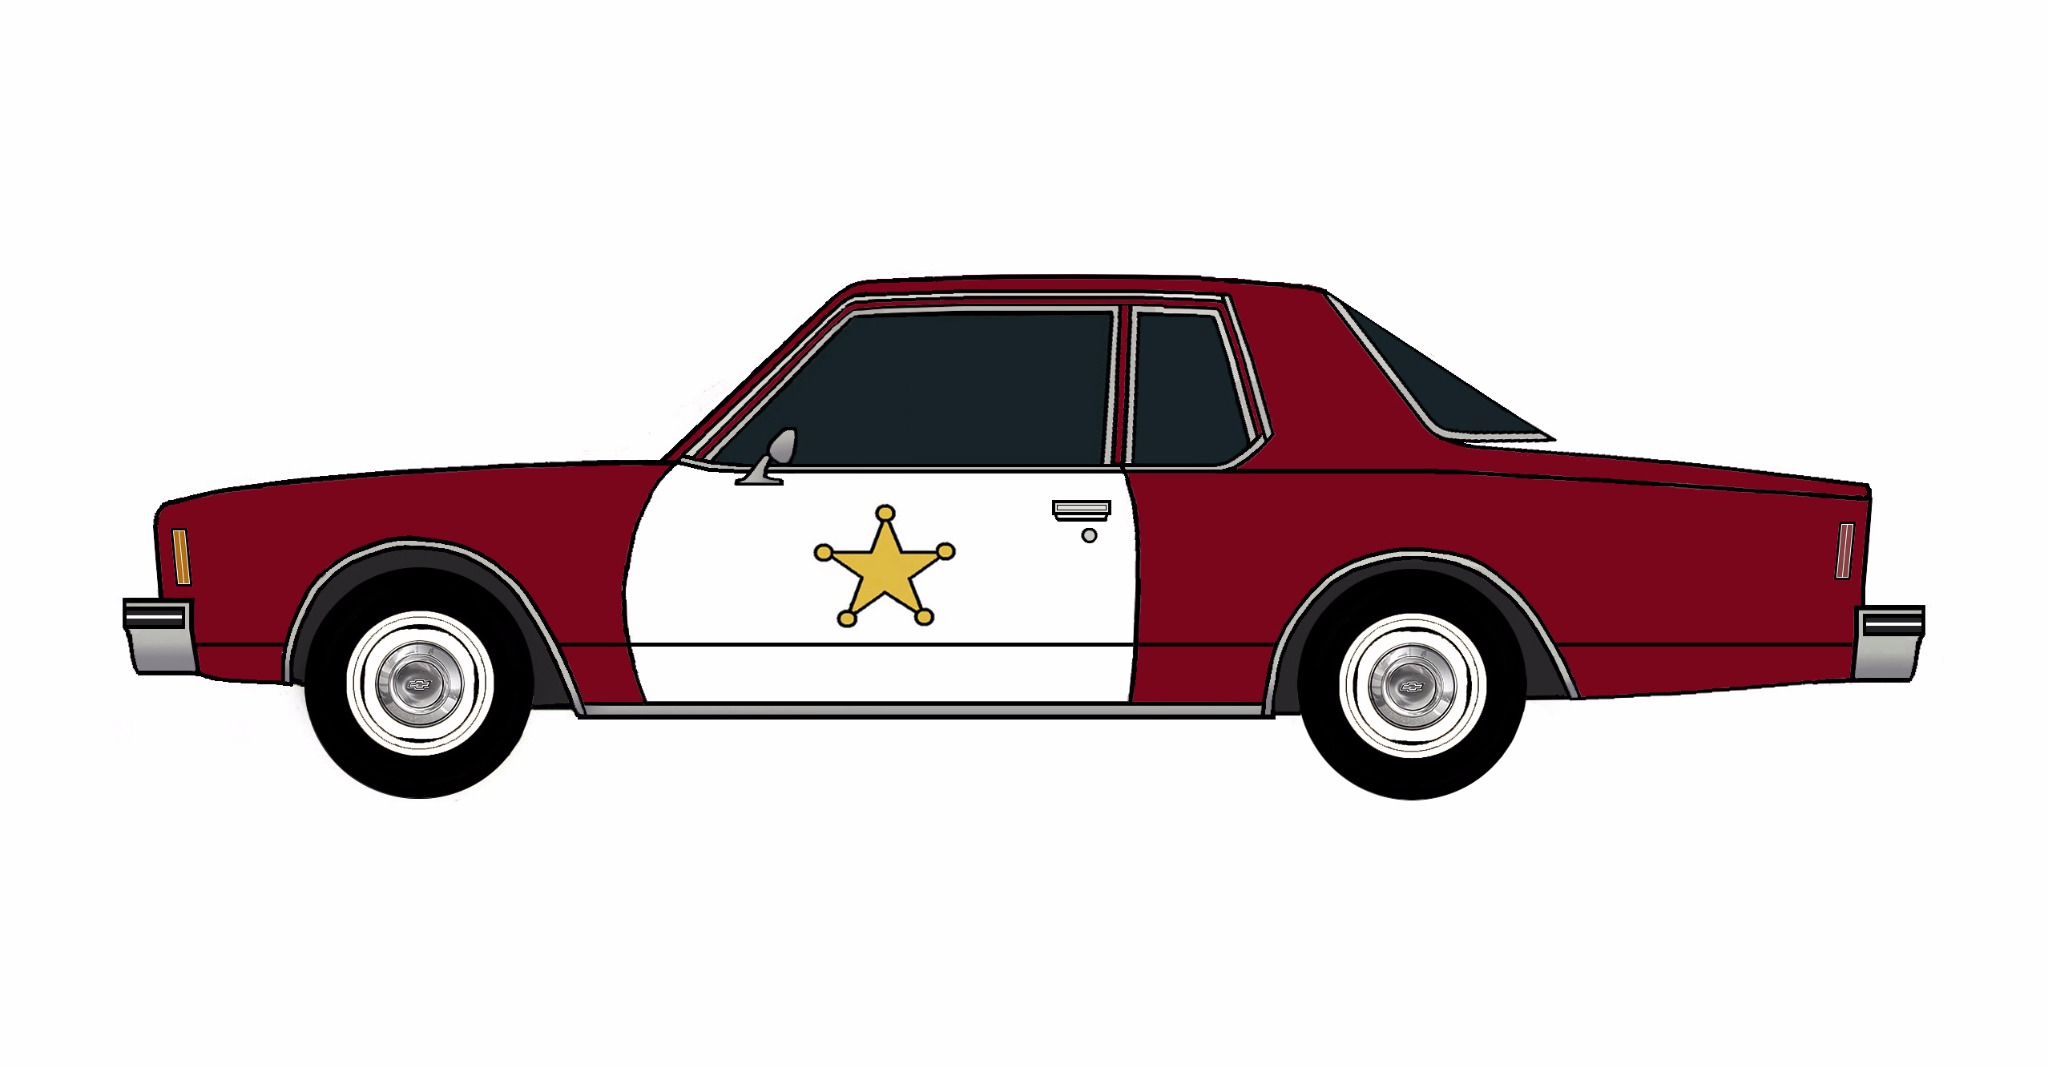 1977 Chevy Impala Police Coupe DEEP BURGUNDY